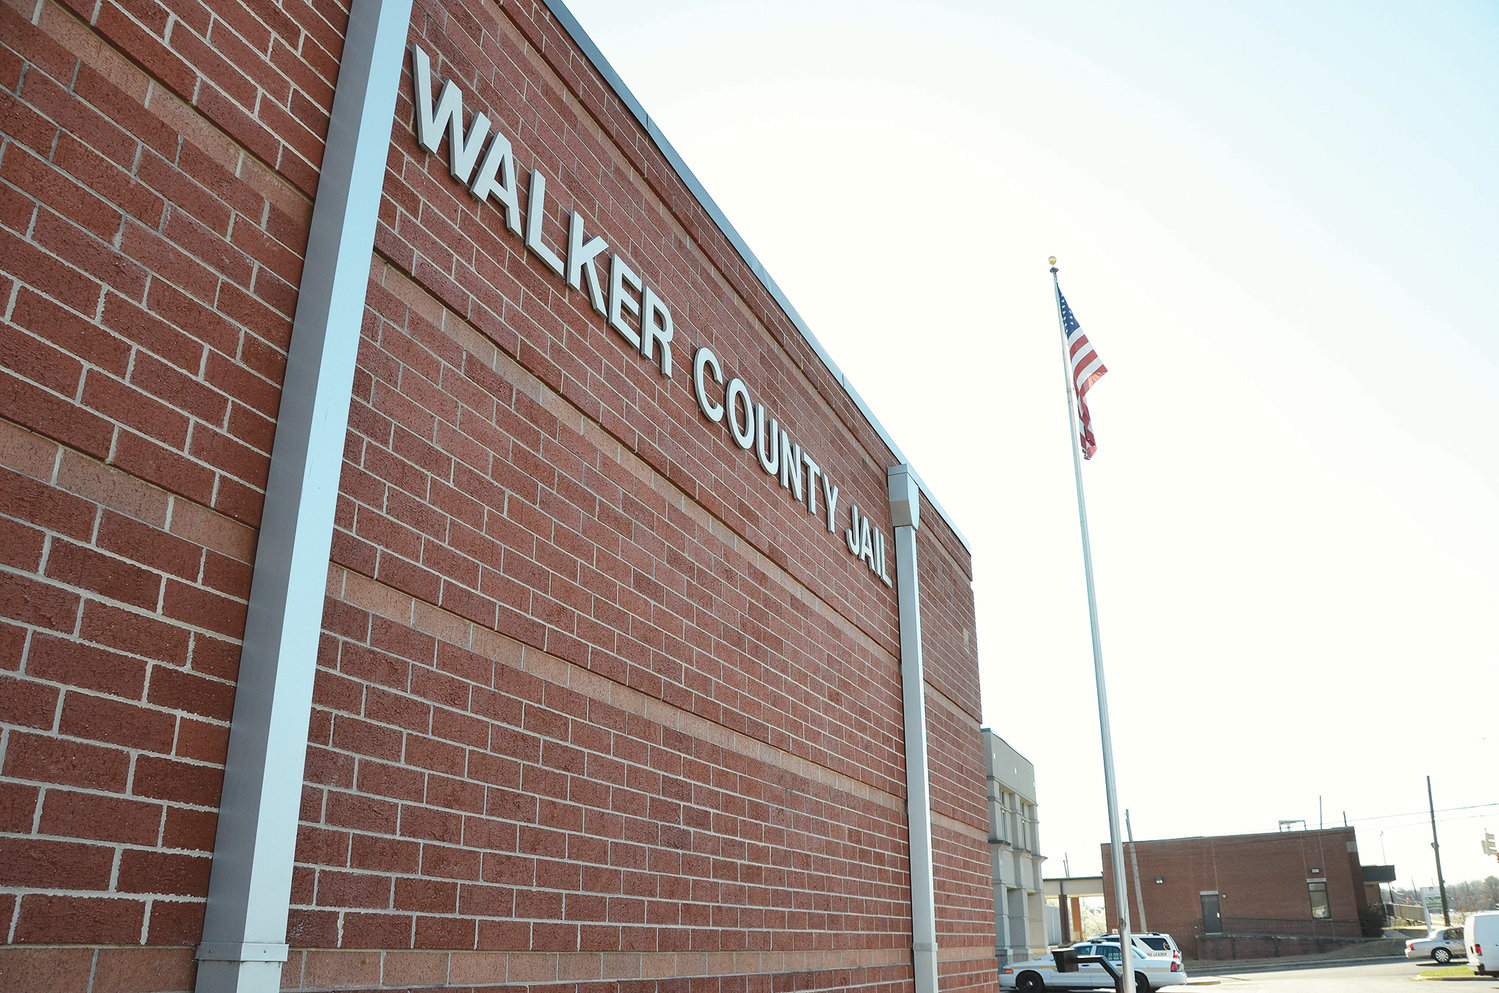 Ensuring the safety of employees and inmates at the Walker County Jail will be on the agenda for sheriff-elect Nick Smith after he is sworn in on Jan. 14.